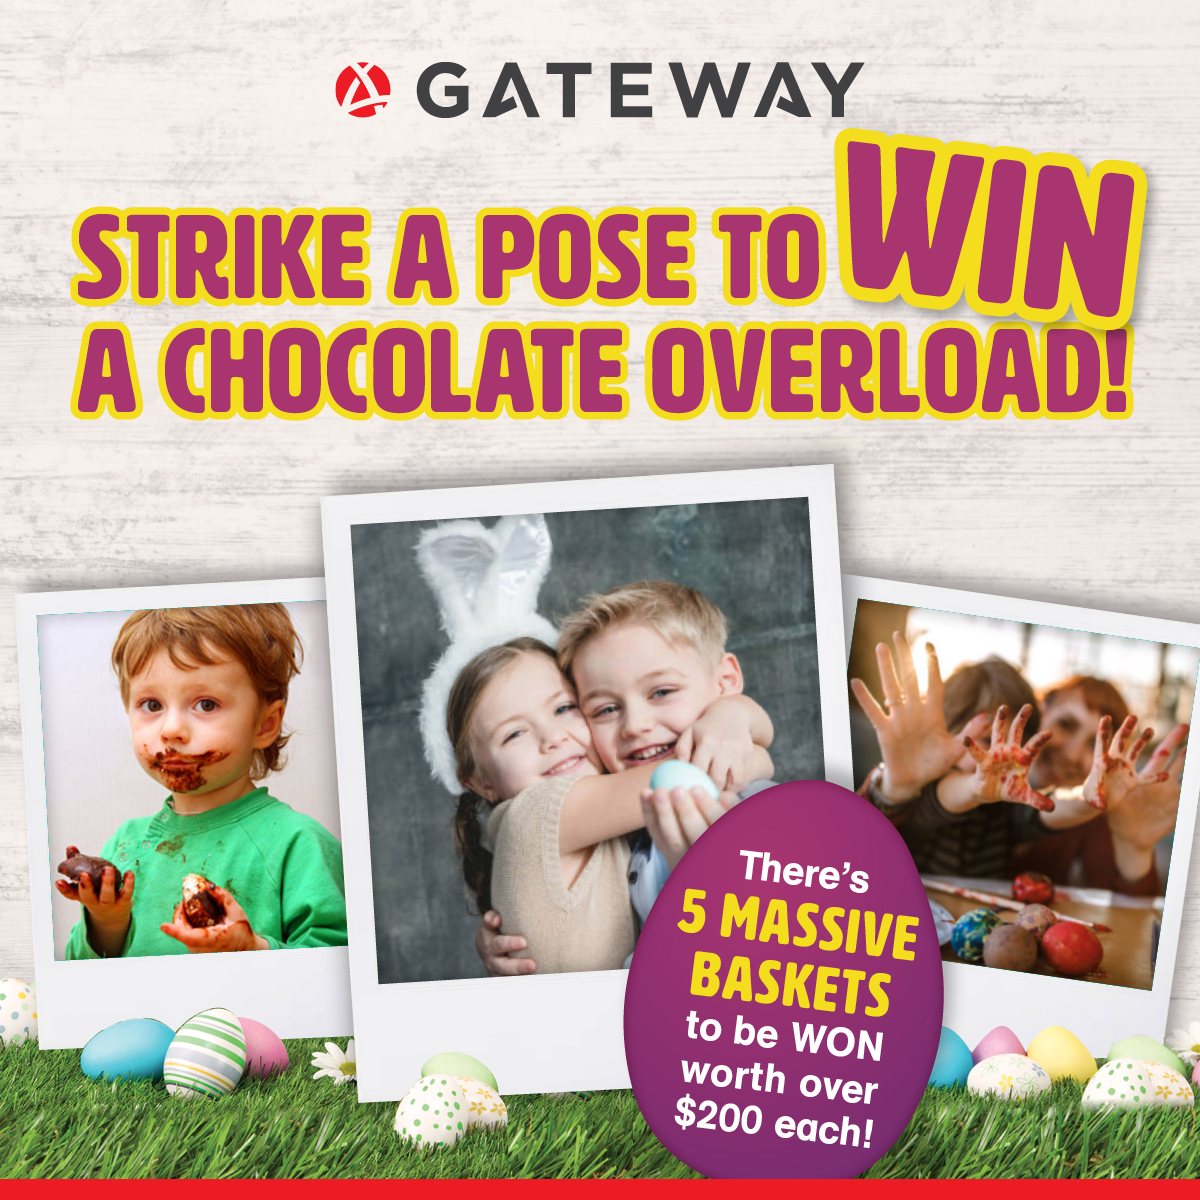 Strike a Pose to WIN a Chocolate Overload!